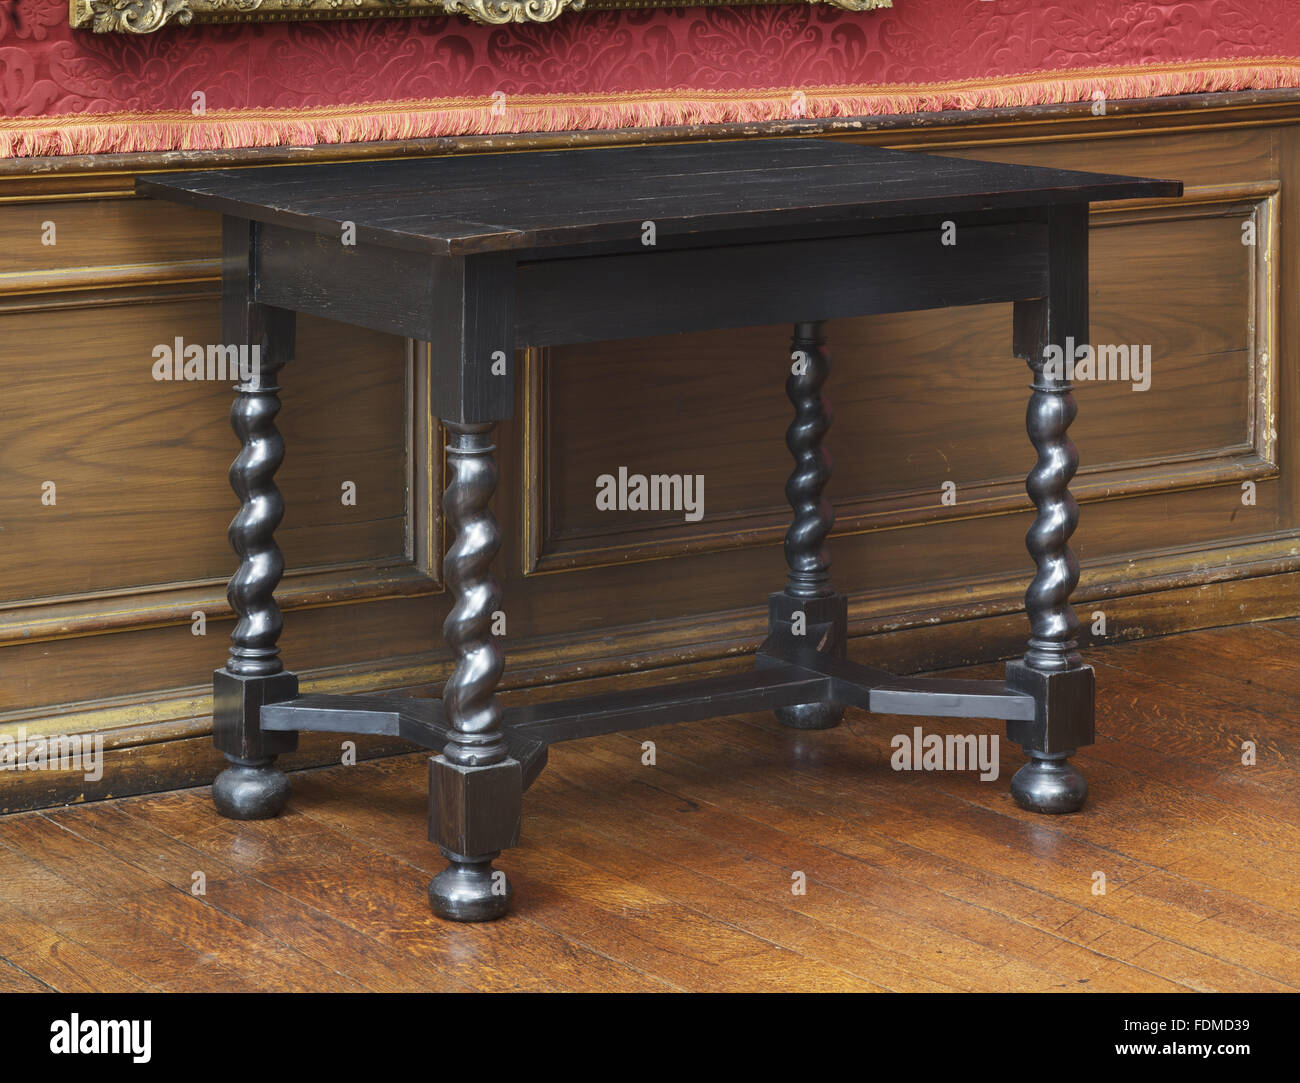 A Plain Ebonised Side Table Of 1675 With Four Twist Turned Legs Terminating  In Bun Feet, At Ham House, Surrey. The Legs Are Joined Together By A Flat  ...